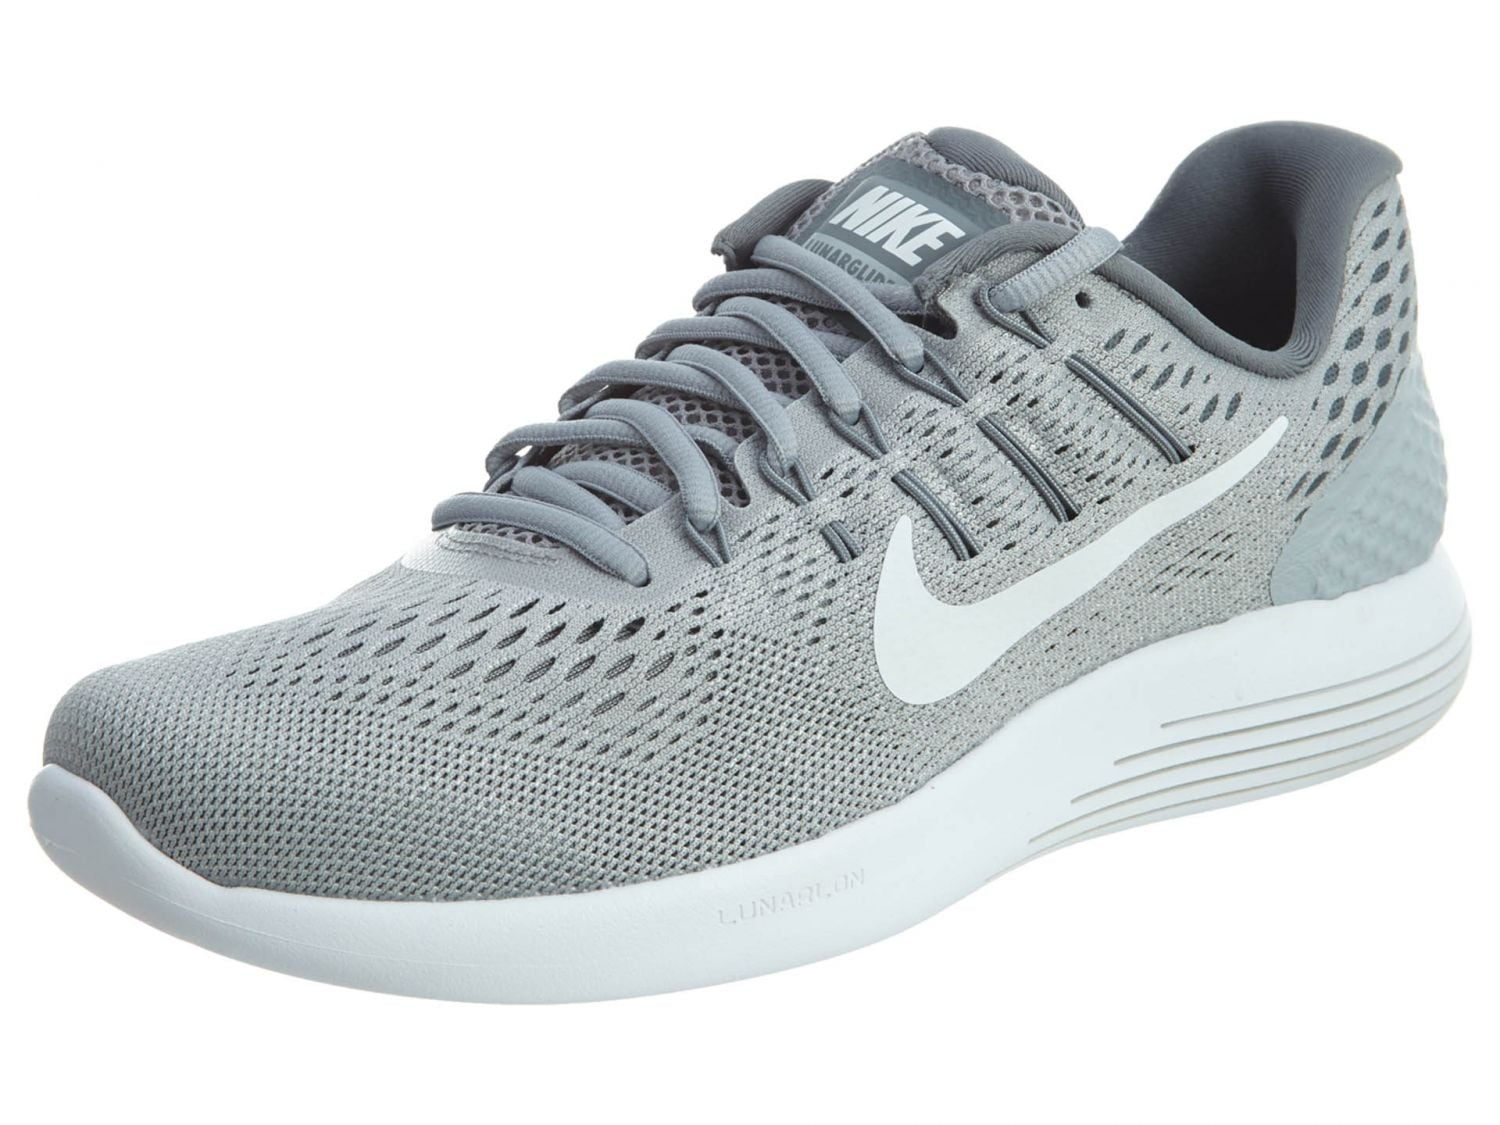 Untado conocido recuperación  Nike Women's Lunarglide 8 | The Best Running Shoes Nike Has to Offer |  POPSUGAR Fitness Photo 10